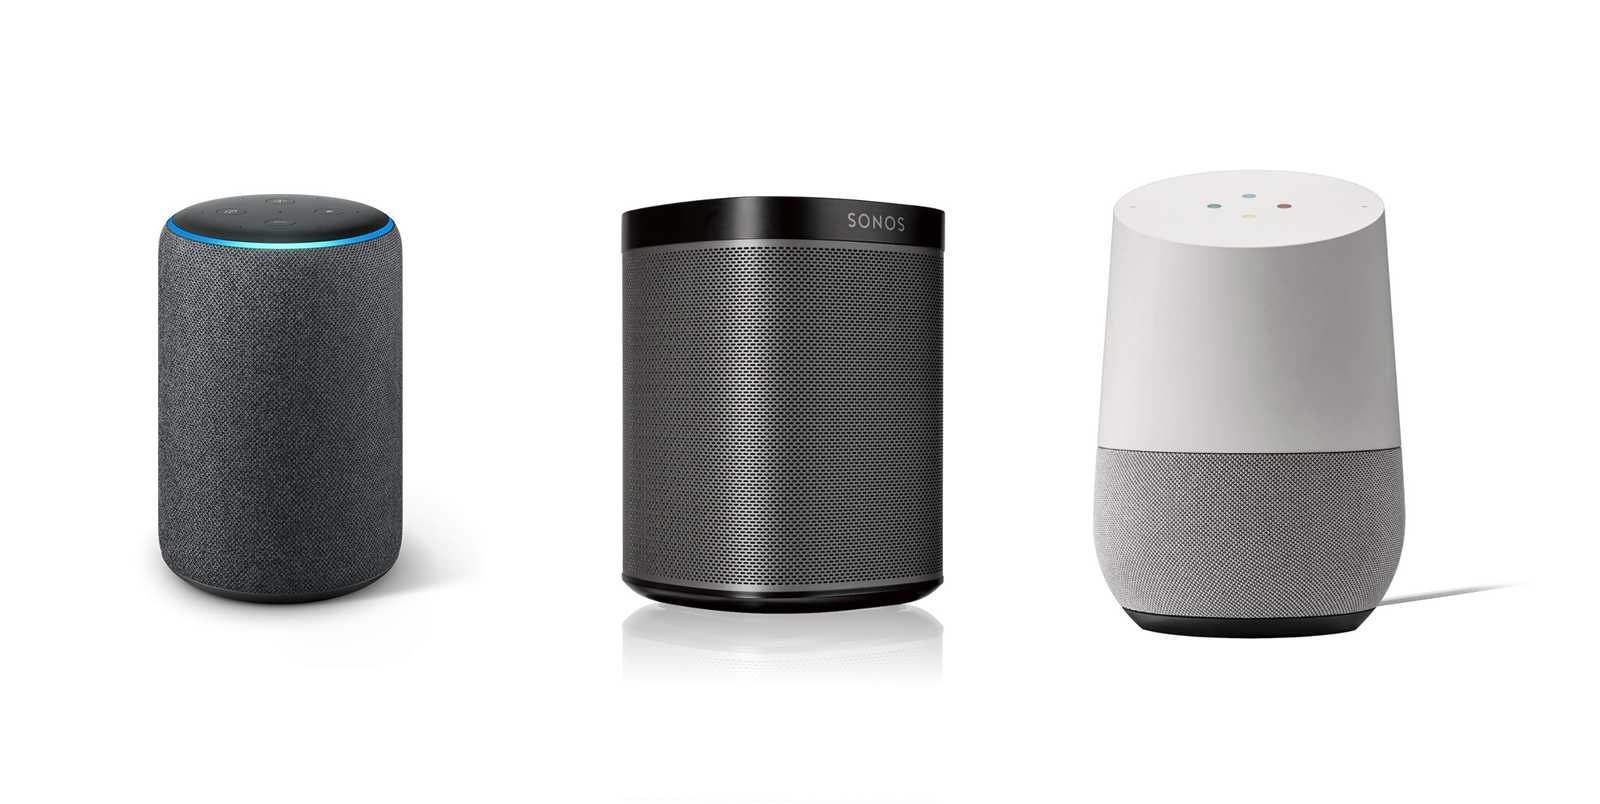 An Amazon Echo, Sonos Play 1, and Google Home sitting in a row.